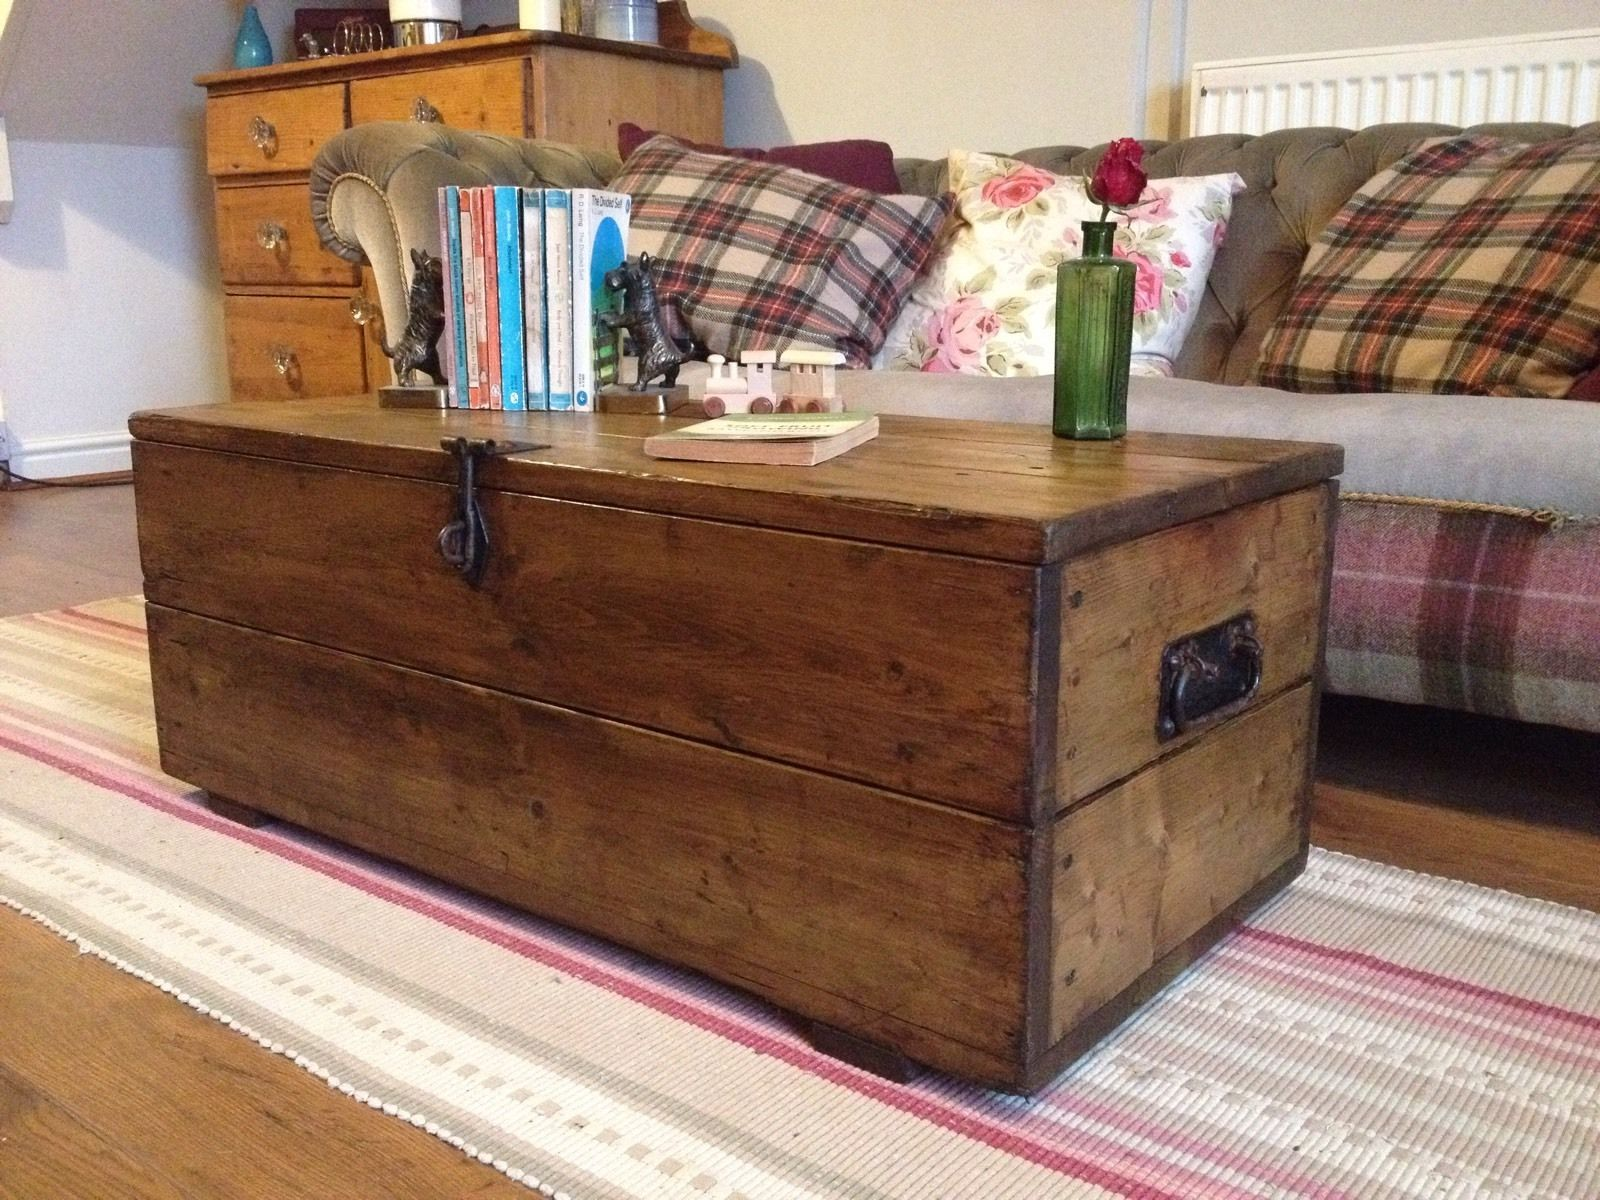 Etonnant Old Rustic PINE BOX, Vintage Wooden CHEST, Coffee TABLE, Toy Or Storage  TRUNK | EBay